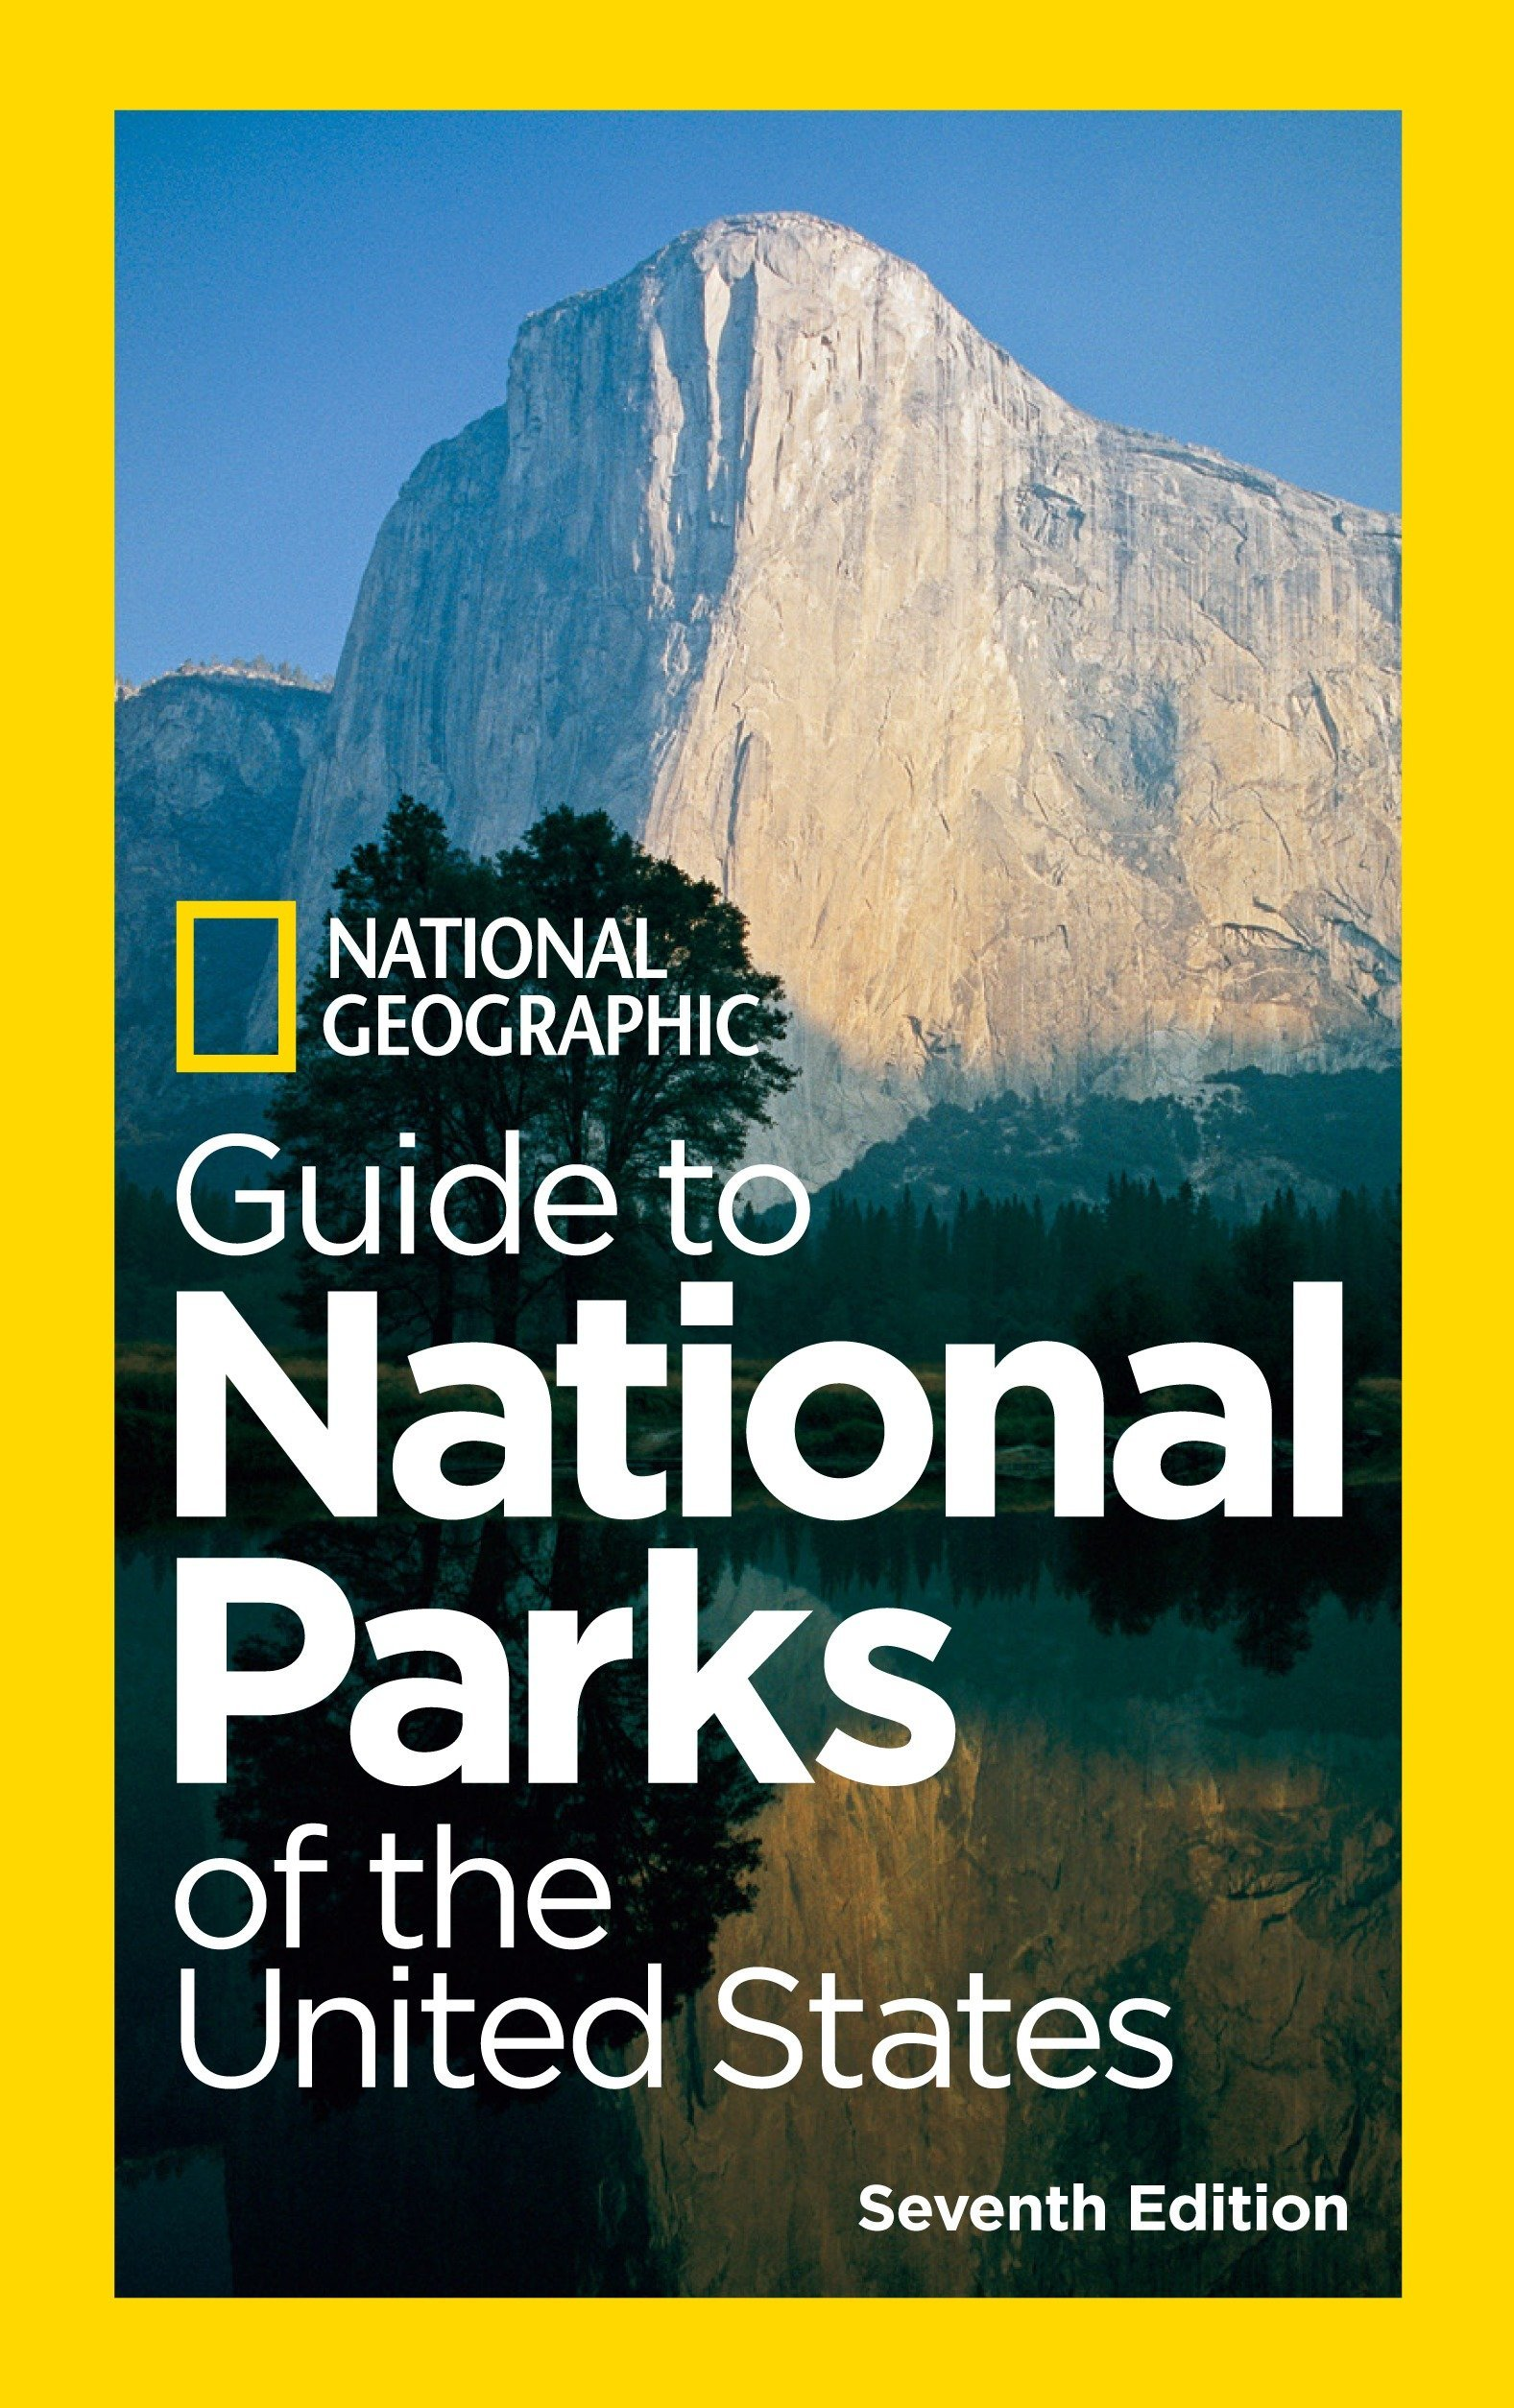 National Geographic Guide to National Parks of the United States, 7th Edition: Amazon.es: National Geographic: Libros en idiomas extranjeros